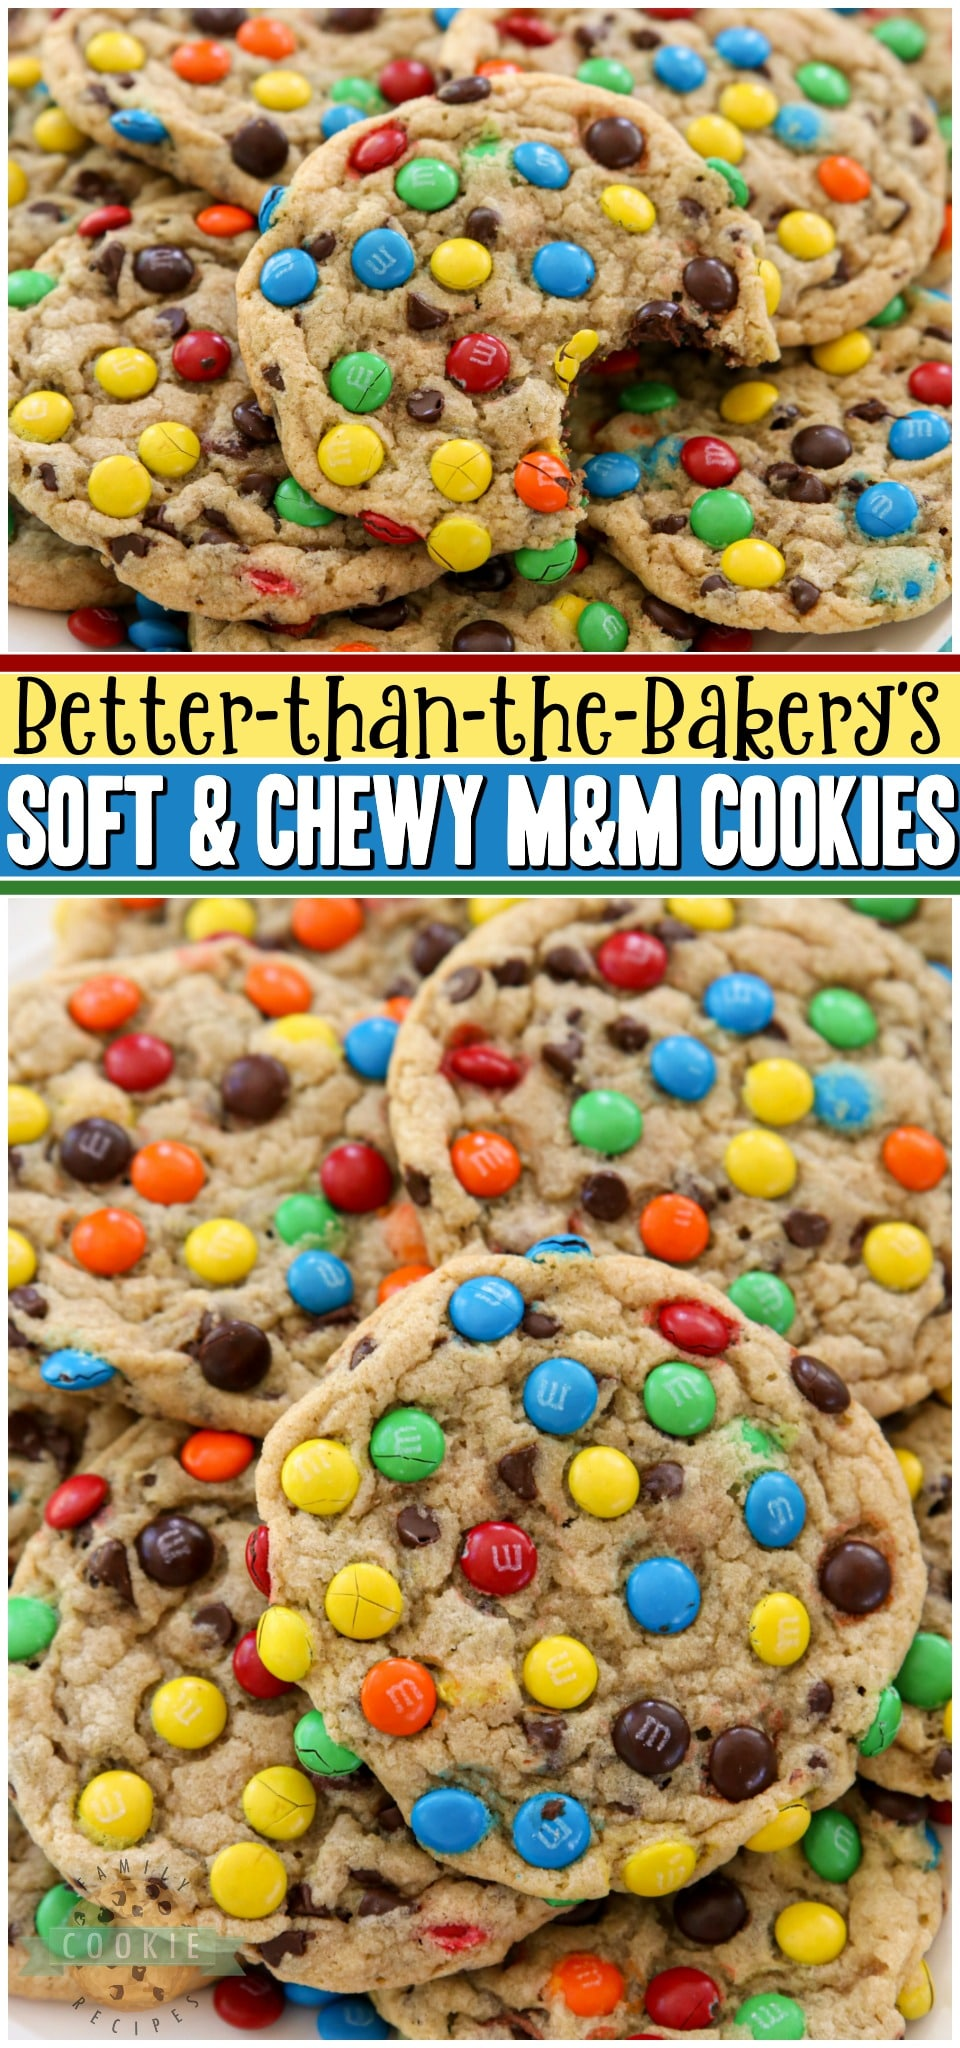 Soft & Chewy M&M Cookies made with butter, sugars, pudding mix & M&M's candy! Easy tip for coating your cookies PERFECTLY with M&M's! BEST M&M Cookie recipe ever!